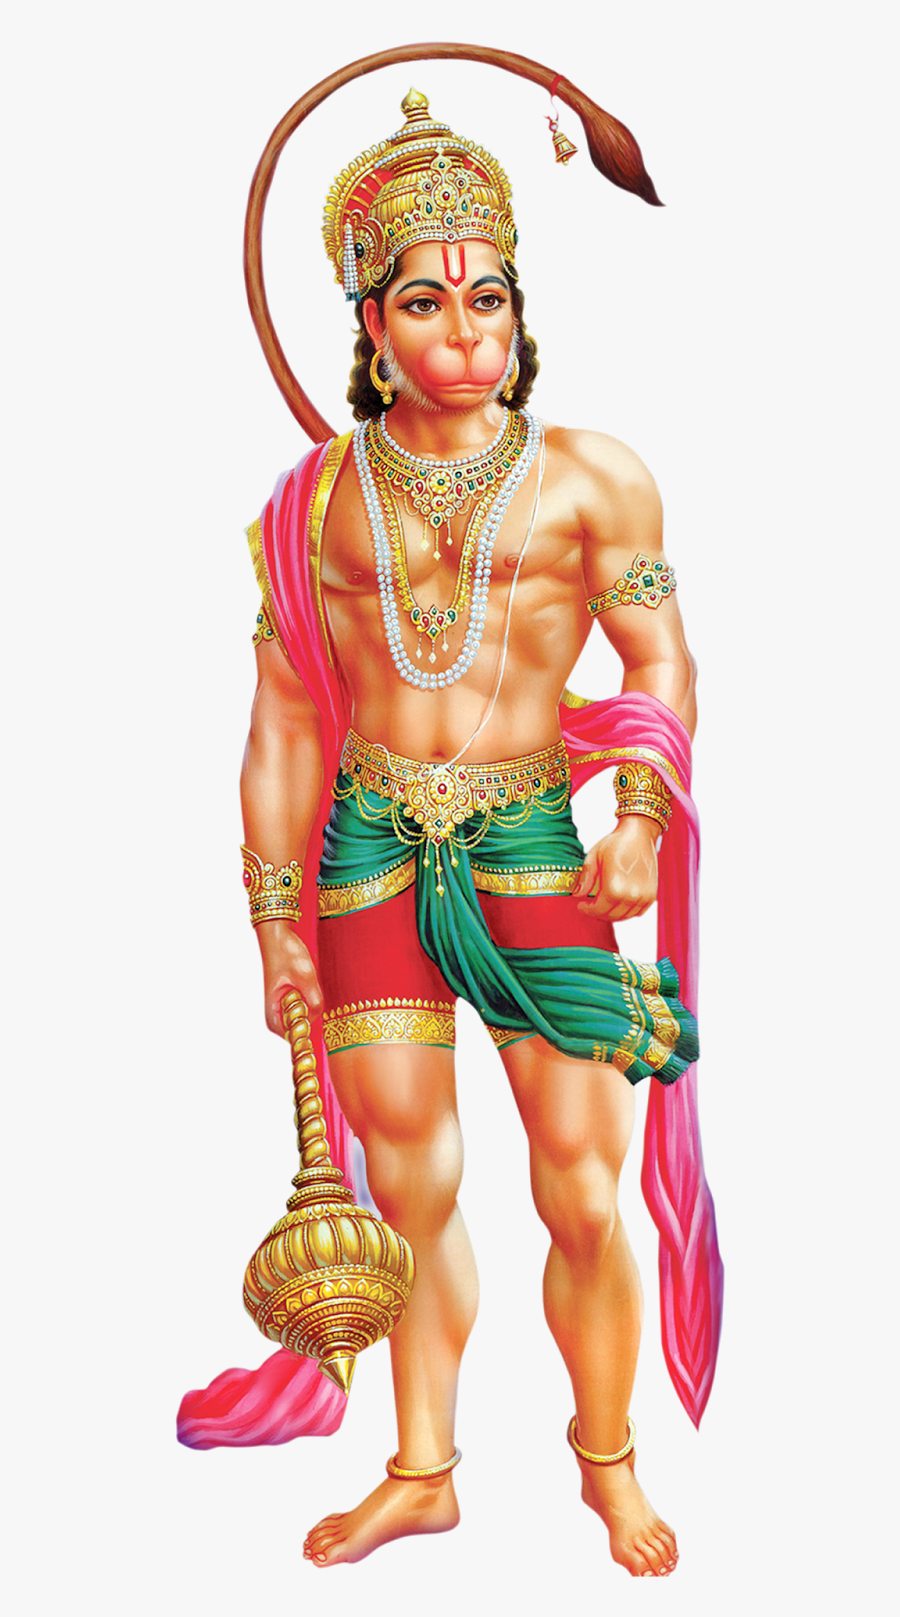 Hanuman Transparent Background - Bajrang Bali Hanuman Png, Transparent Clipart